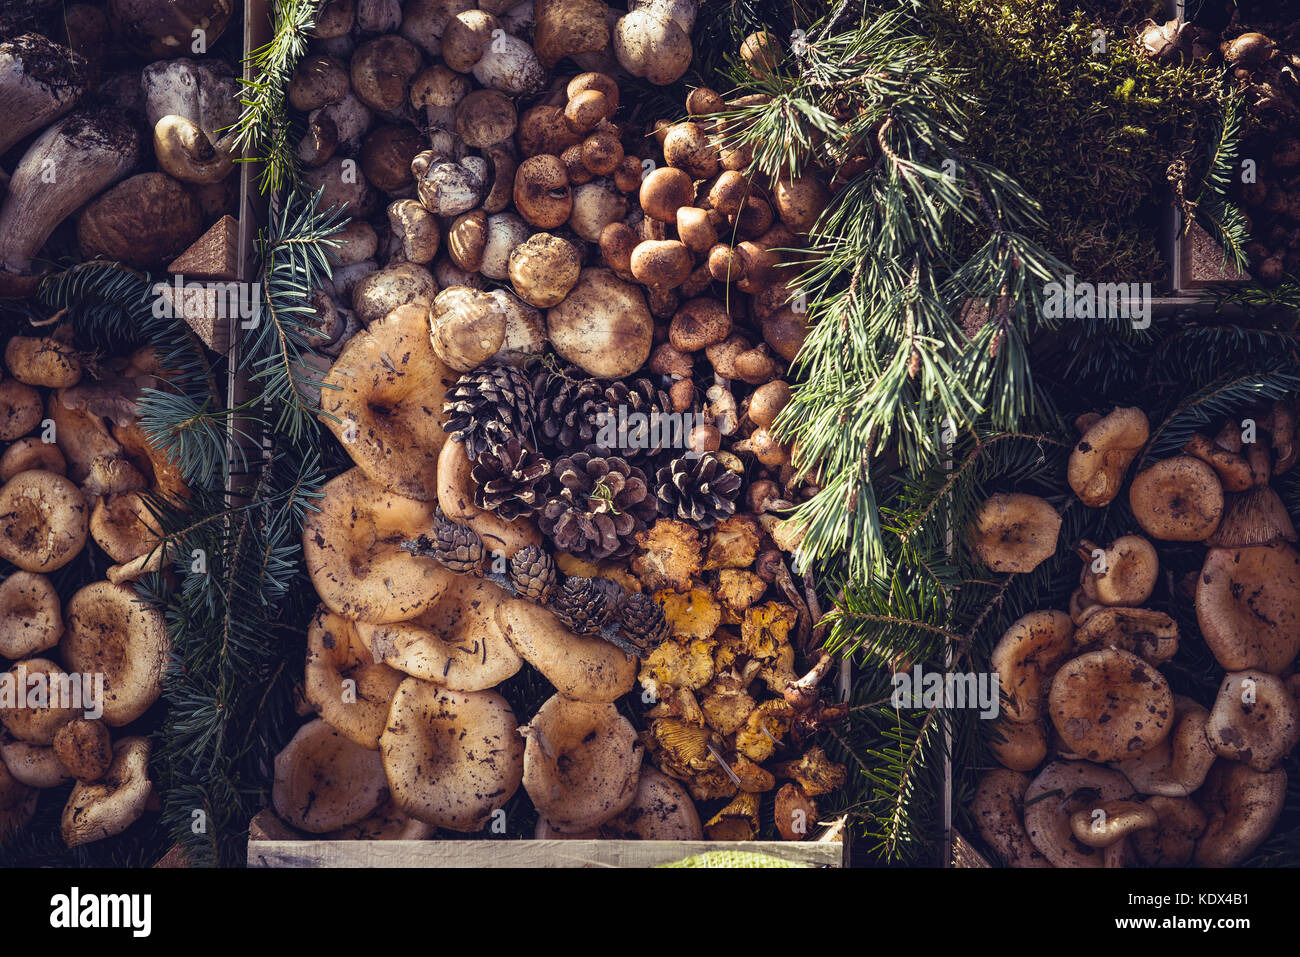 Edible Wild Mushrooms  AmericanMushroomscom